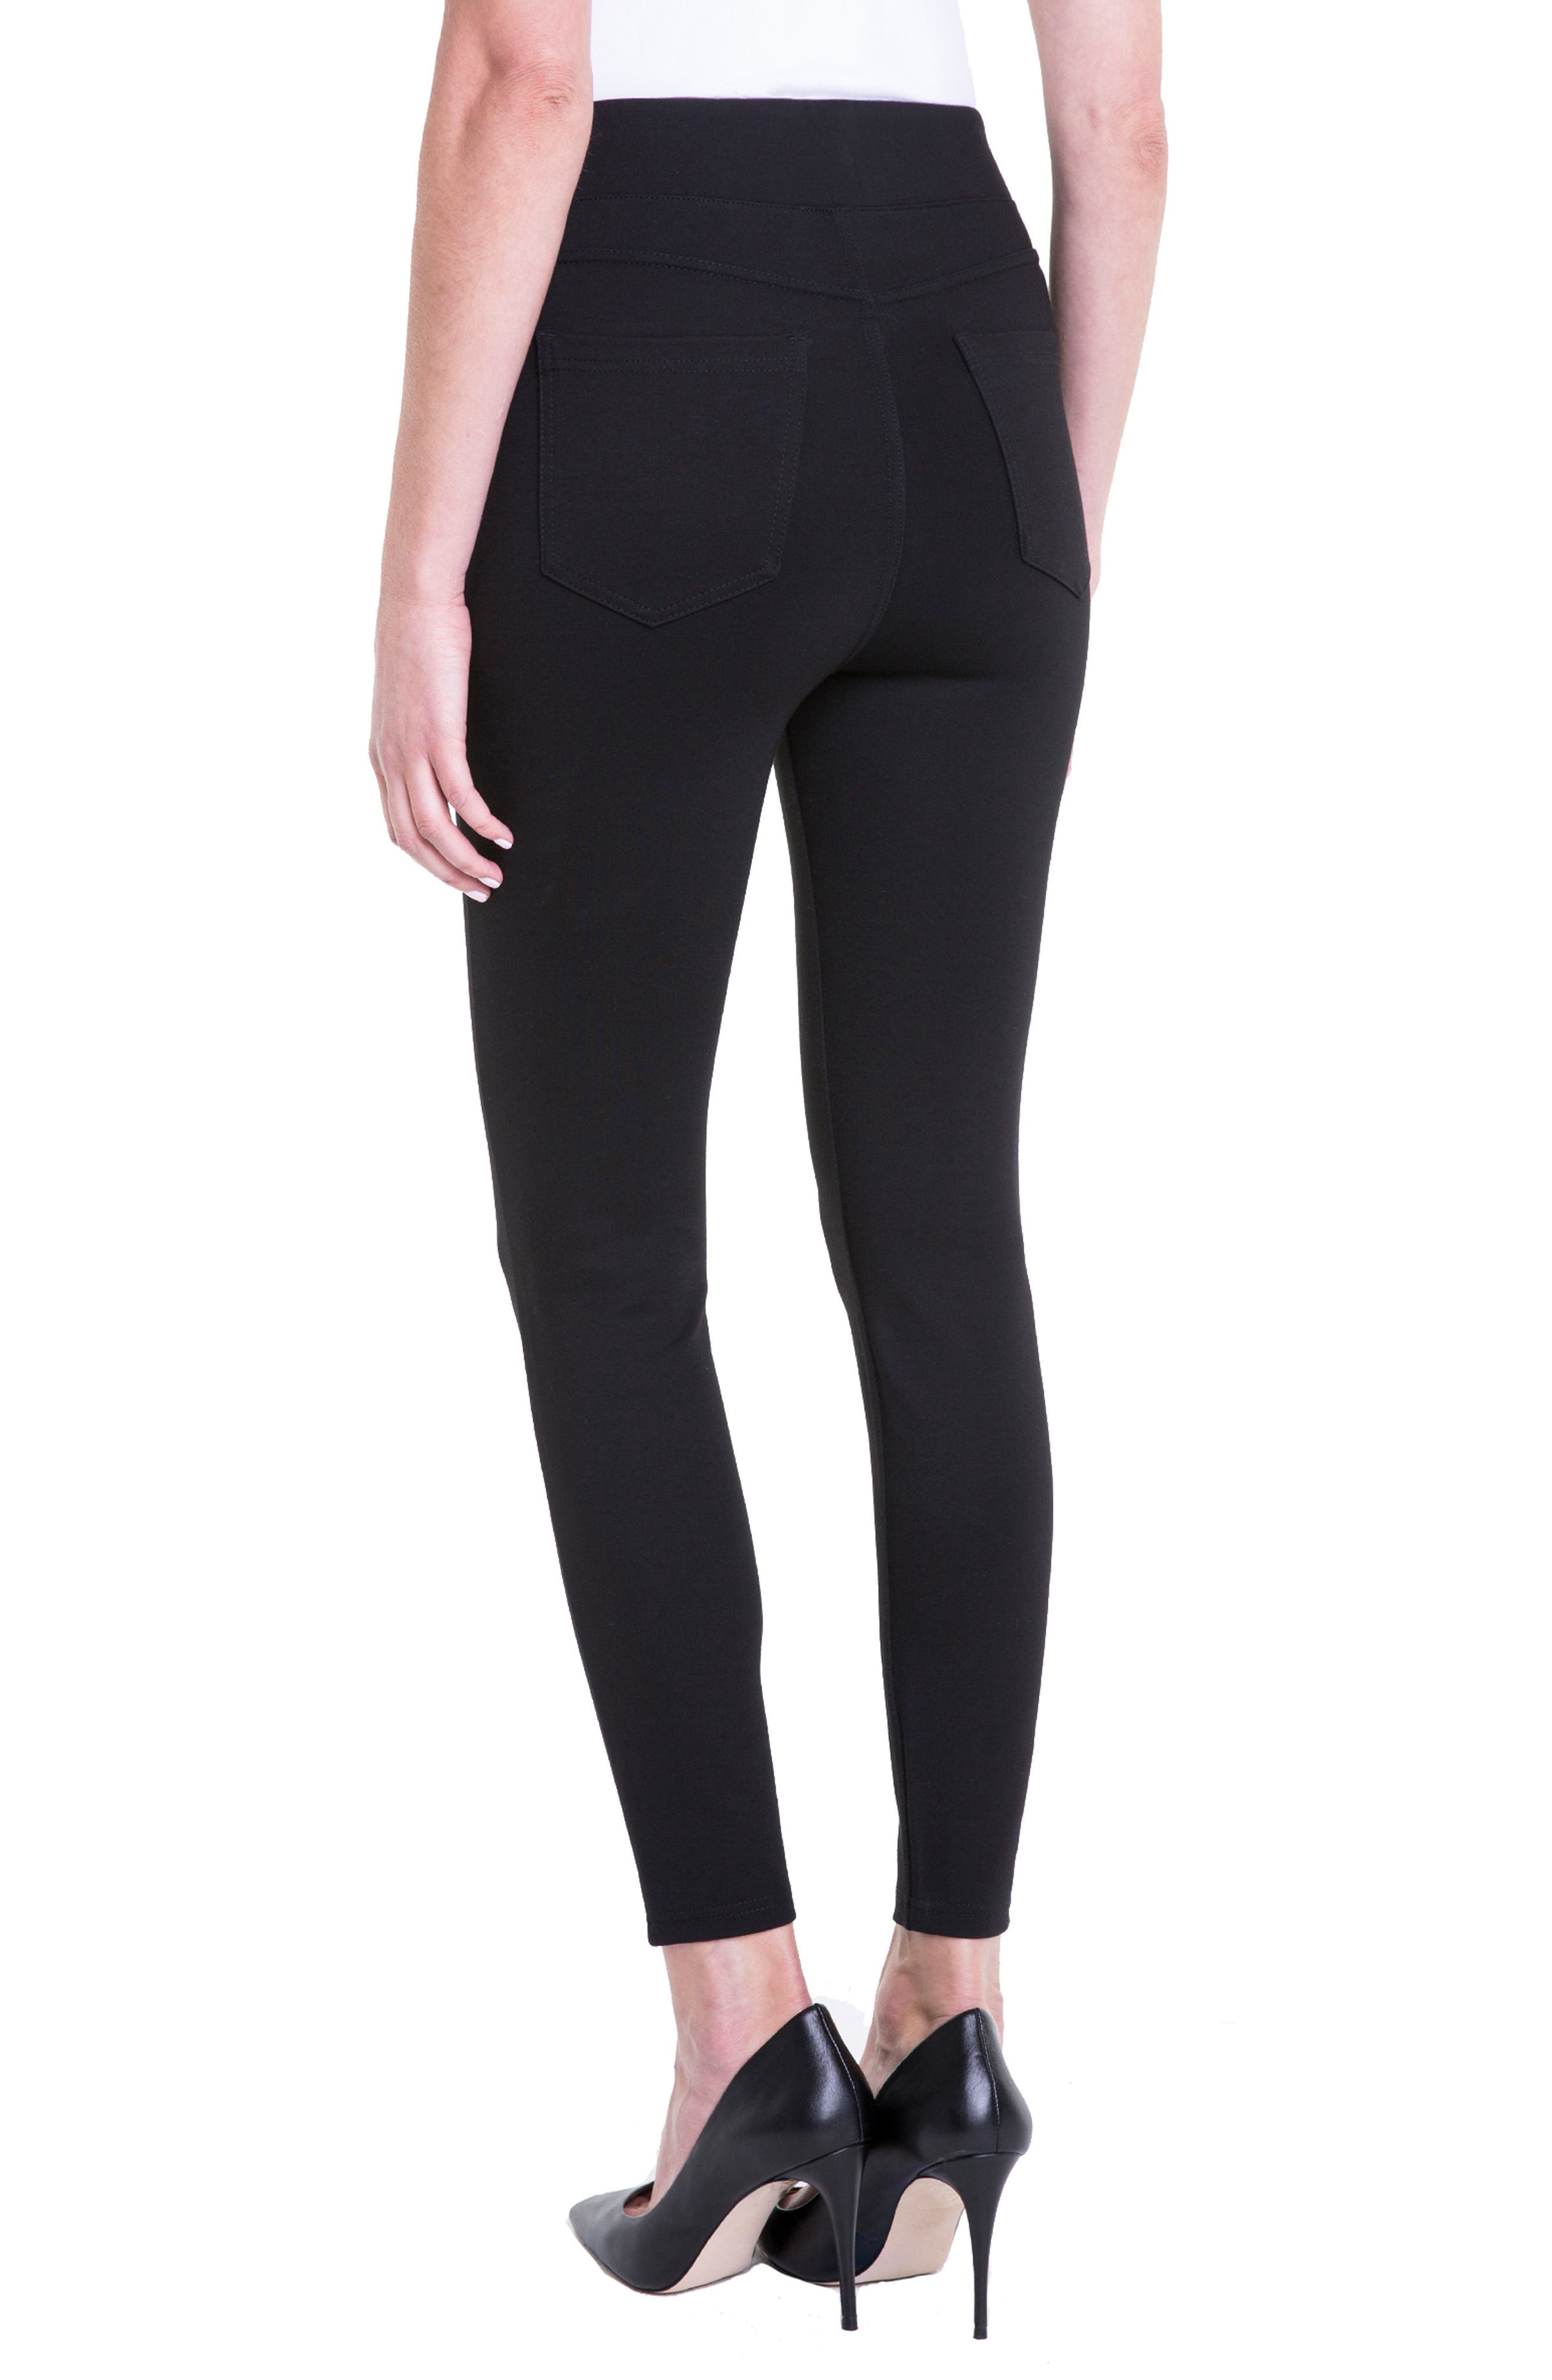 Alternate Image 3  - Liverpool Jeans Company Bridget High Waist Pull-On Ankle Leggings